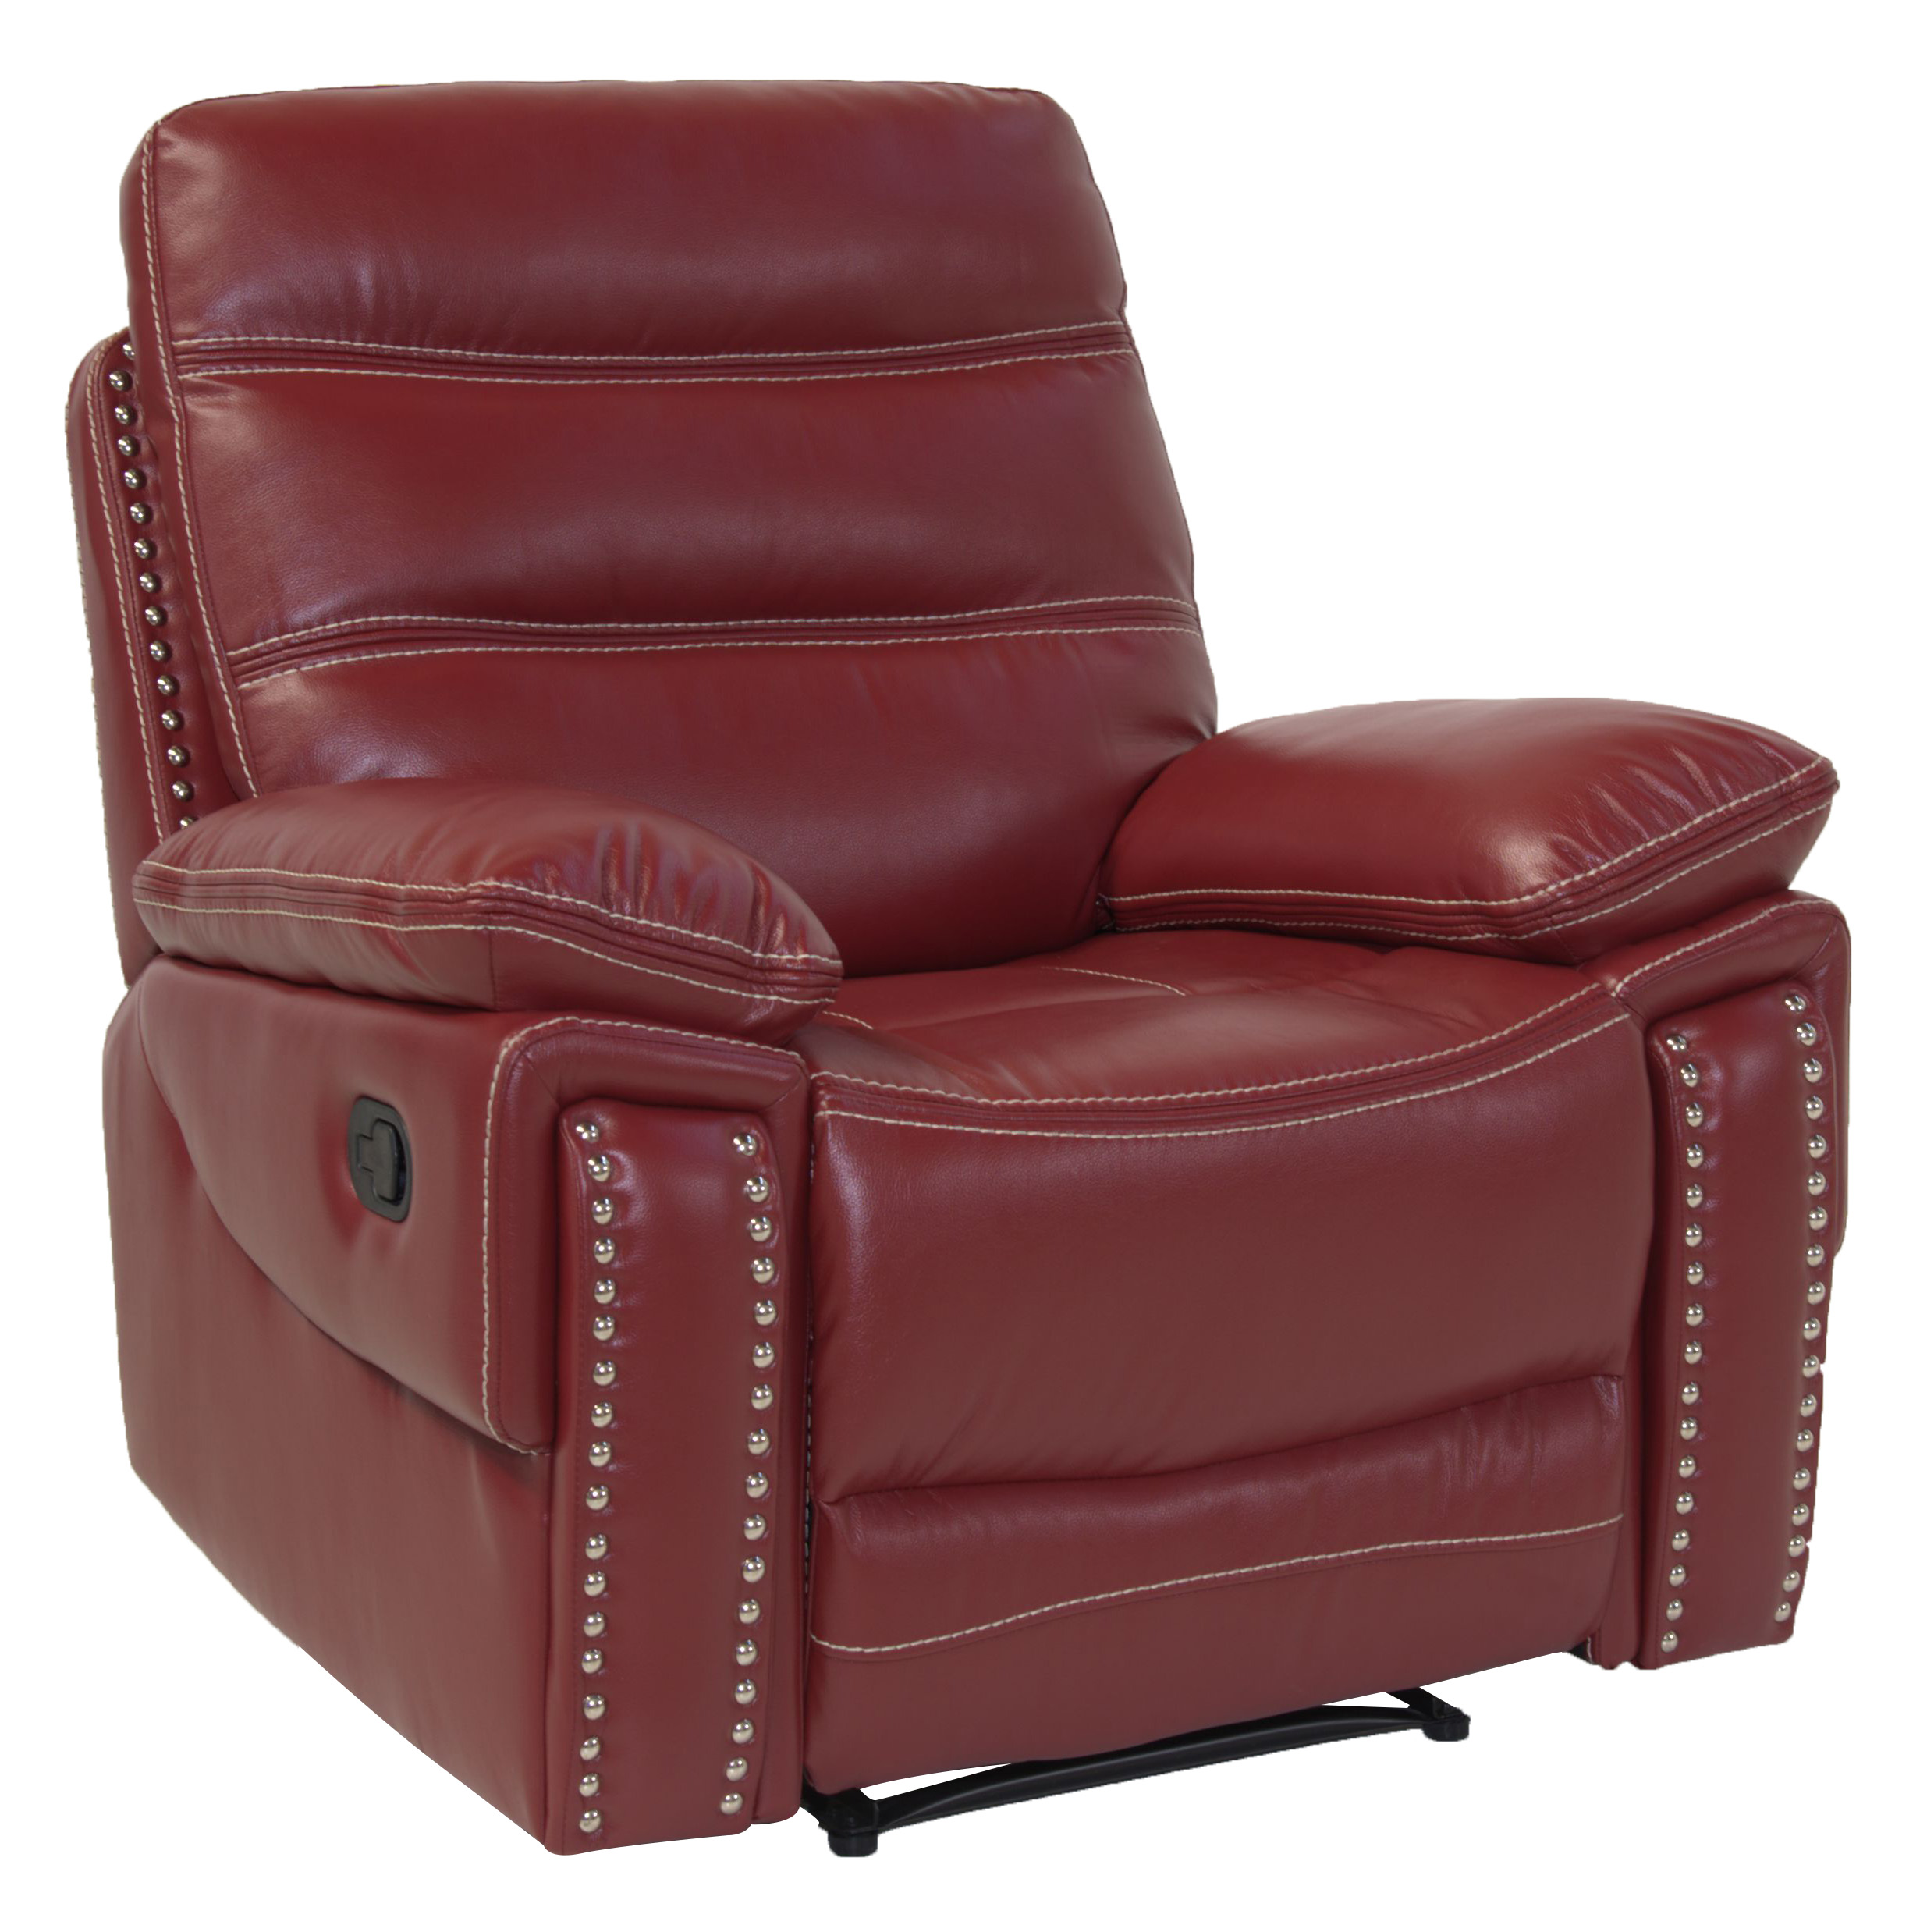 Recliner Lounge Arf001 Recliner Lounge Suite Furniture Liquidation Warehouse